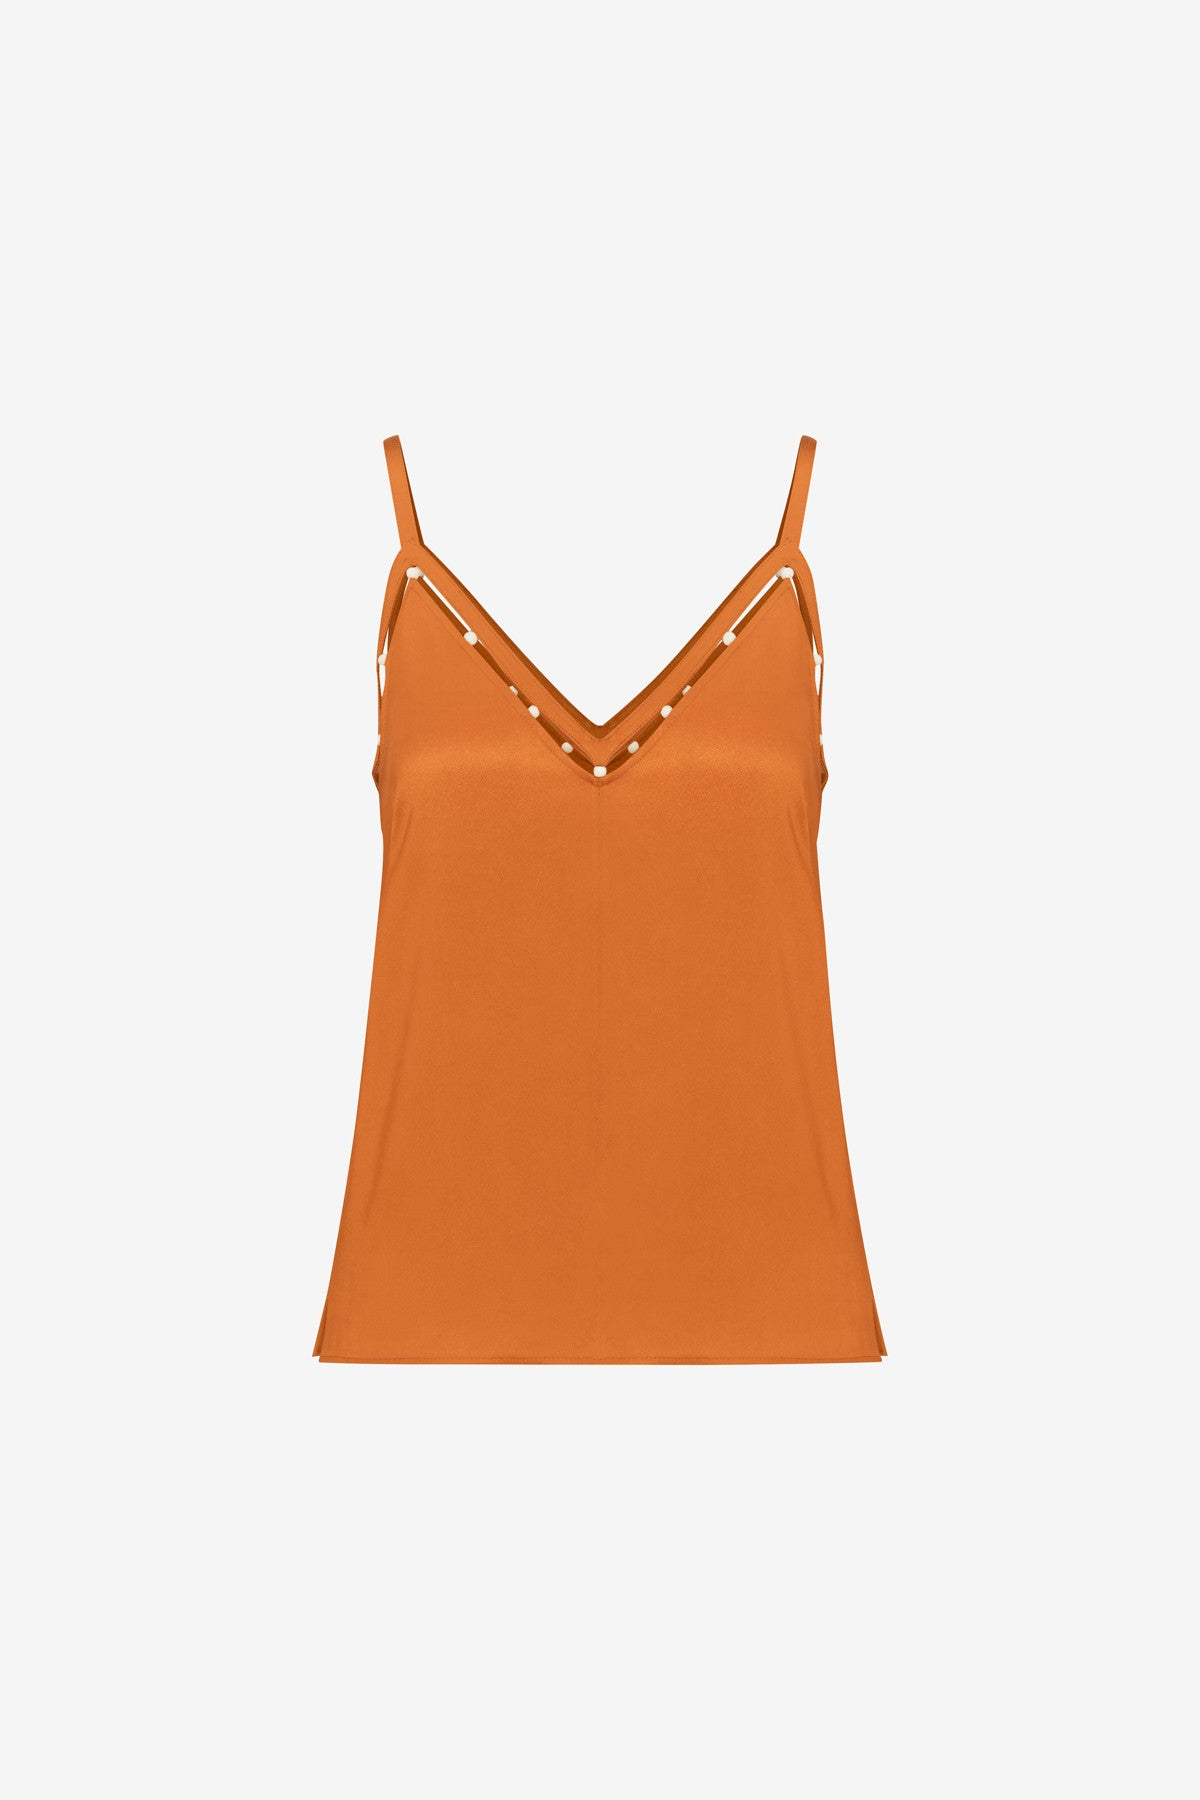 LIQUID SATIN BEADED CAMISOLE TOP